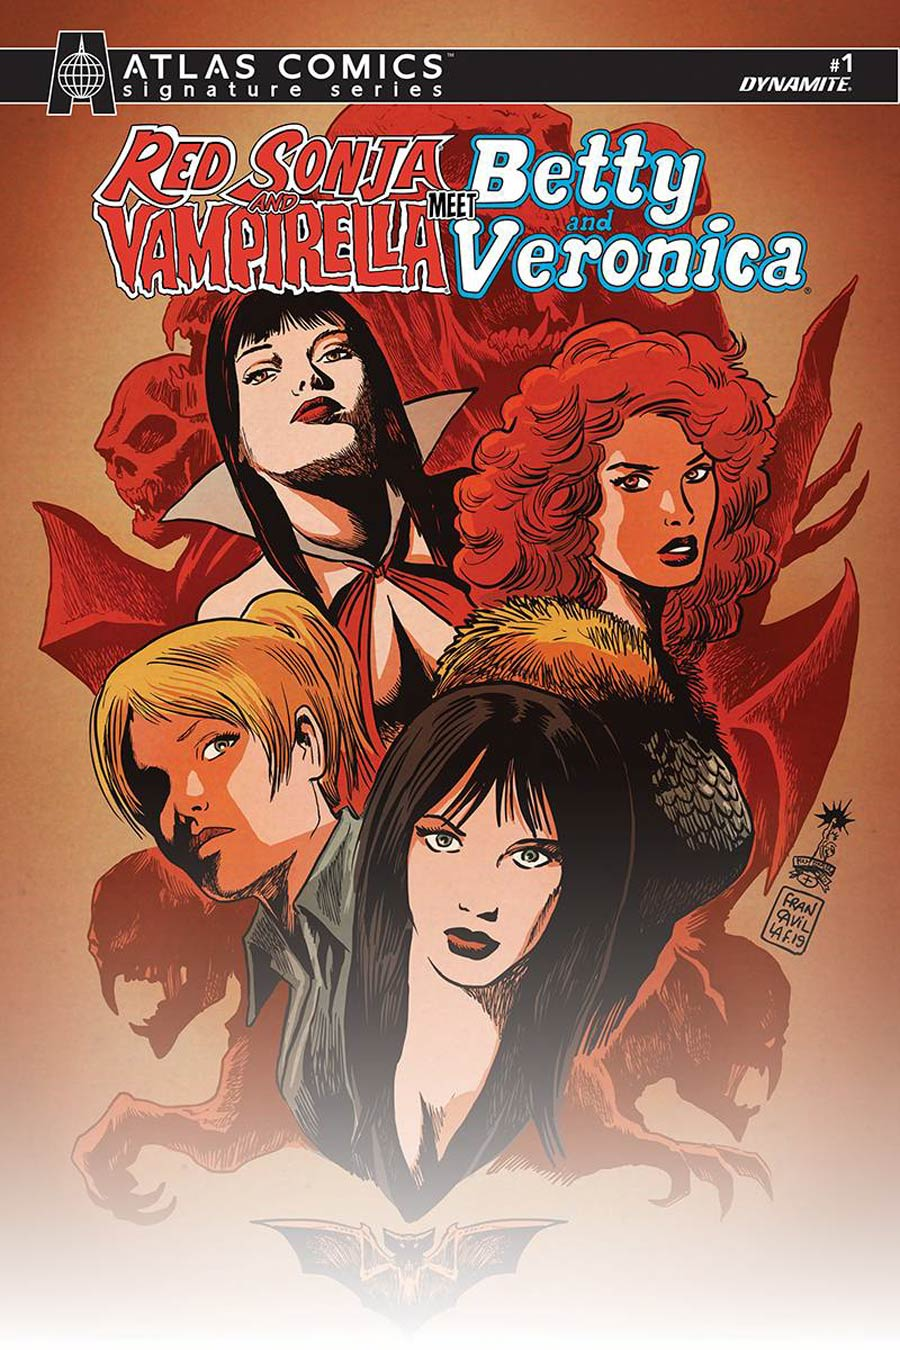 Red Sonja And Vampirella Meet Betty And Veronica #1 Cover N Atlas Edition Francesco Francavilla Variant Cover Signed By Amy Chu